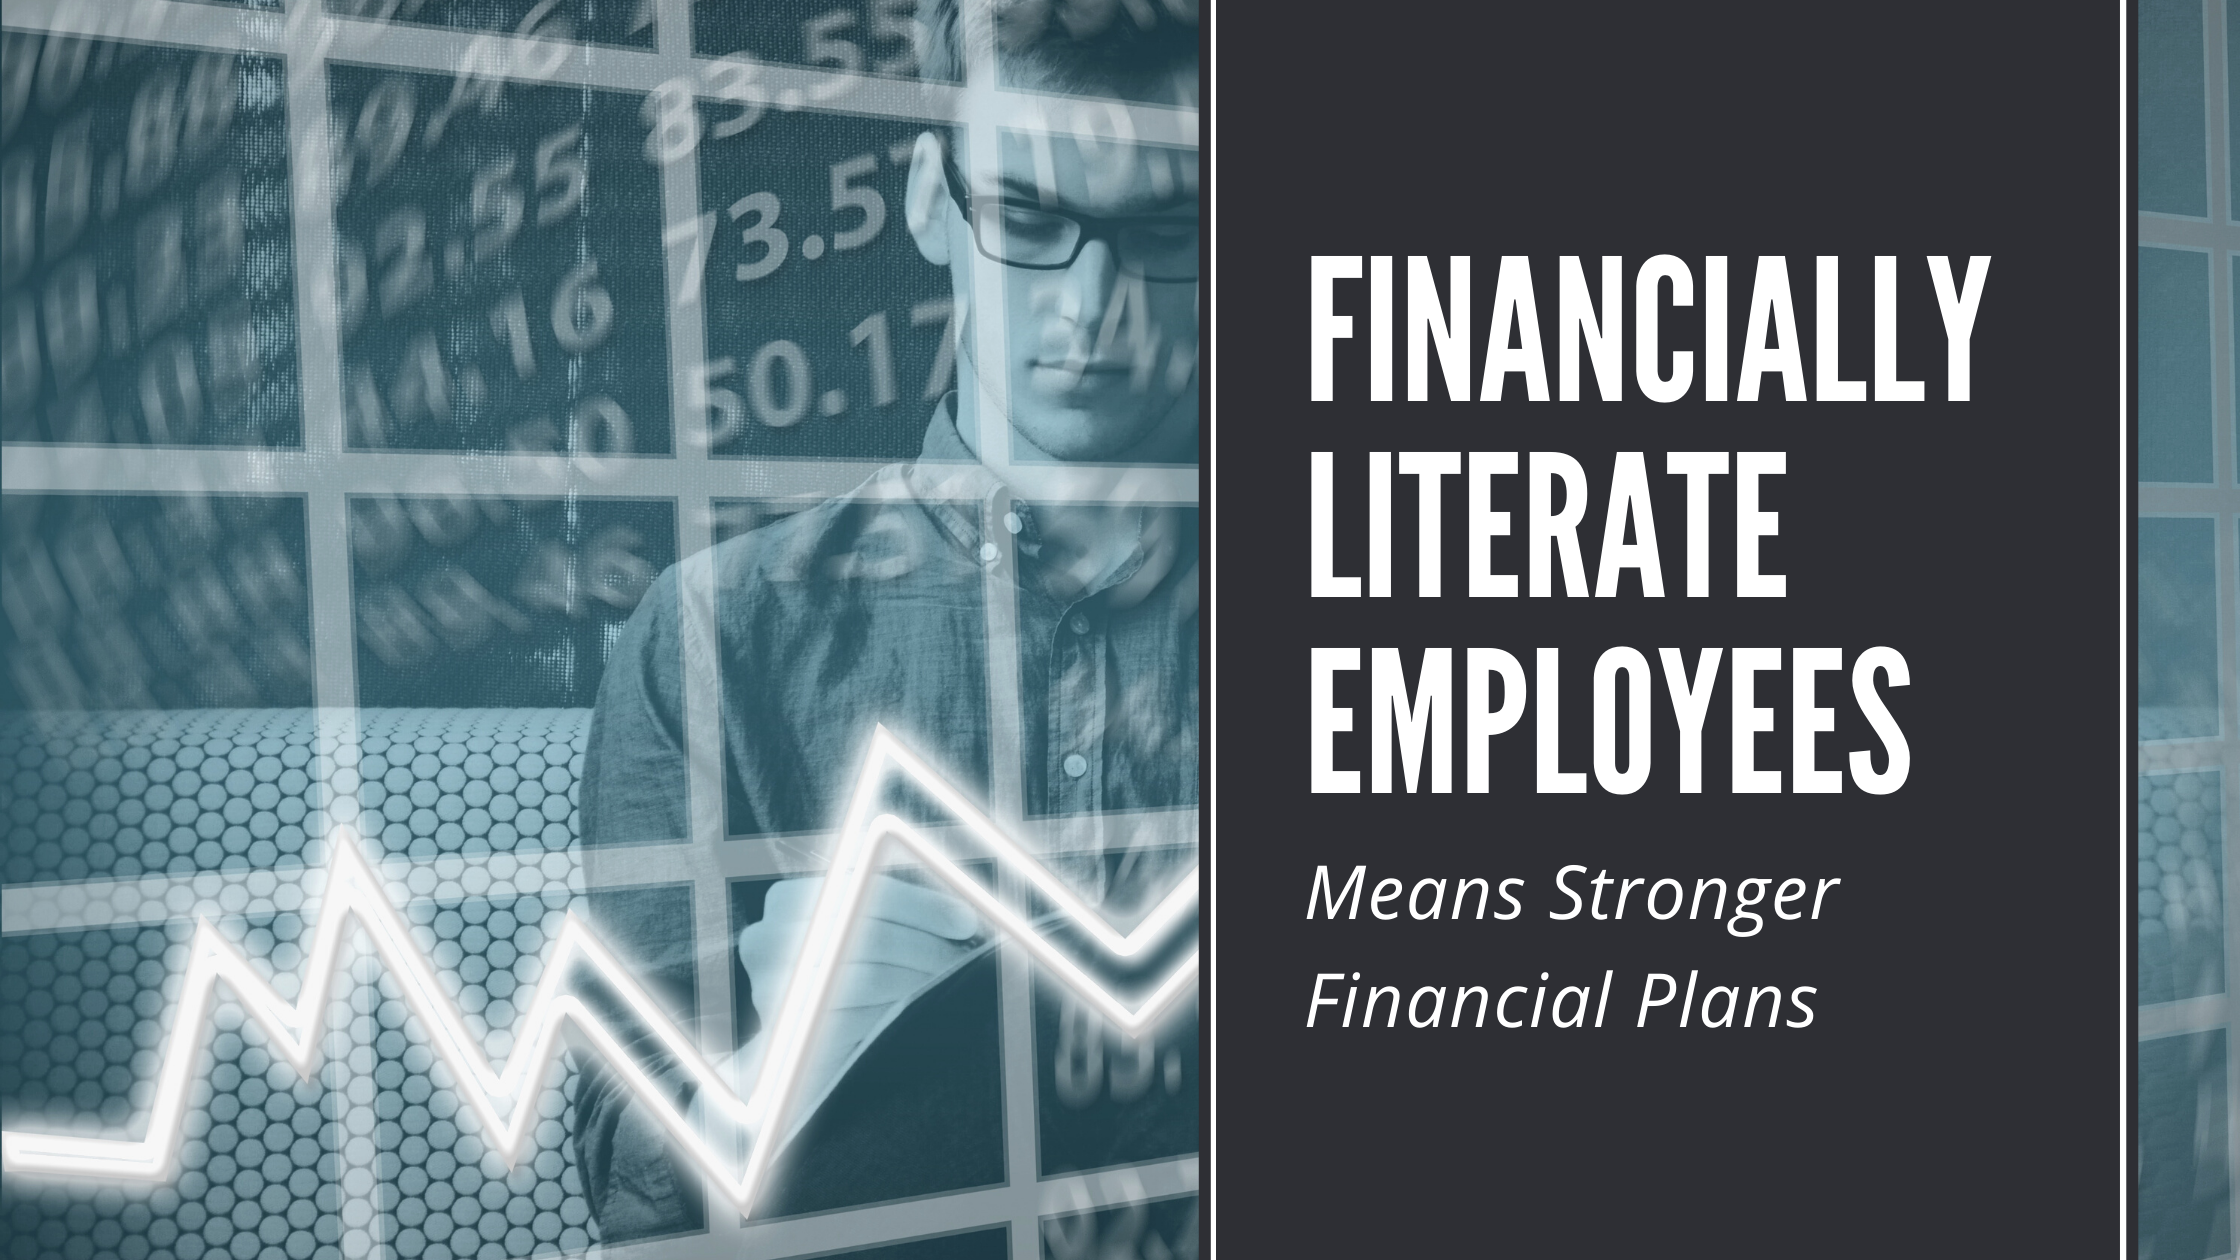 Financially Literate Employees